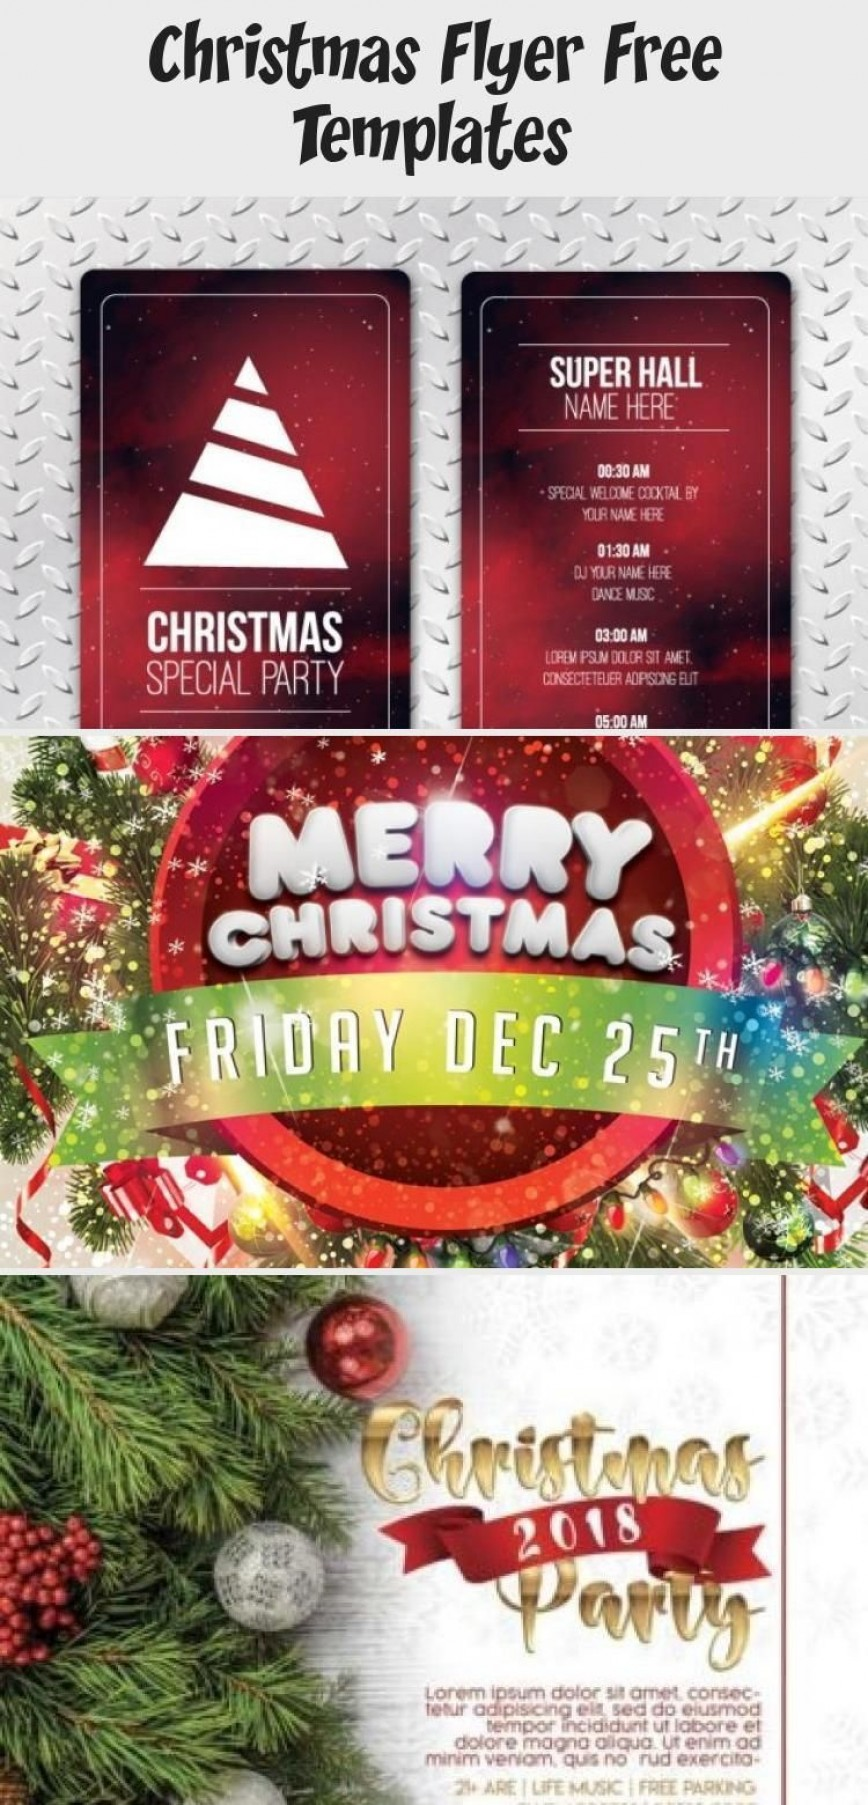 003 Marvelou Christma Flyer Template Free Picture  Work Party Xma Invitation